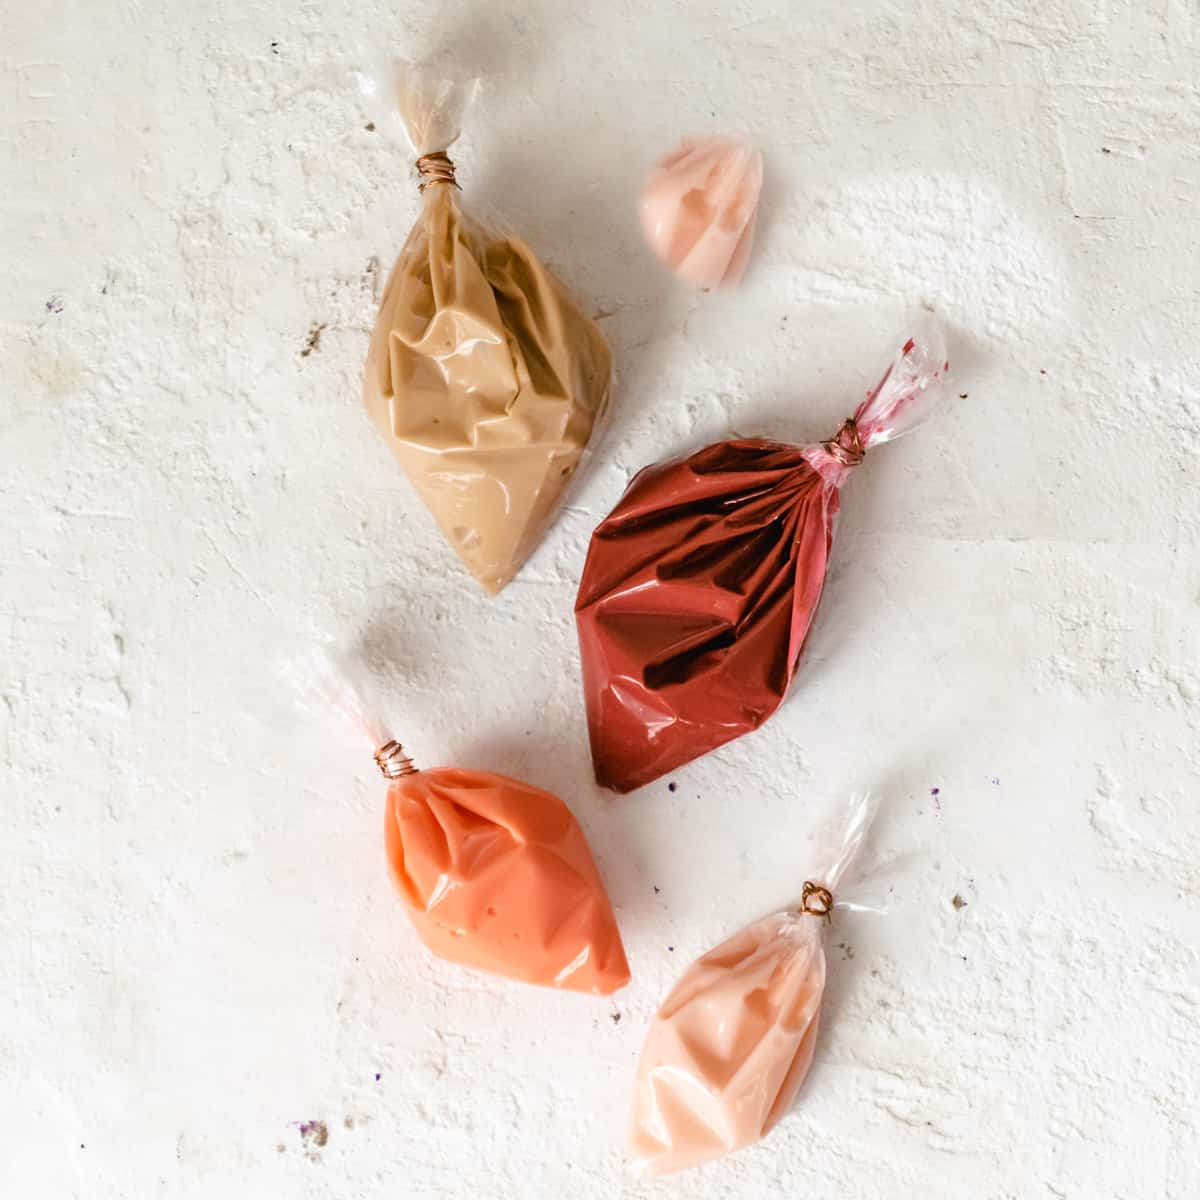 Four bags filled with the sprinkle mixture recipe in shades of pink.